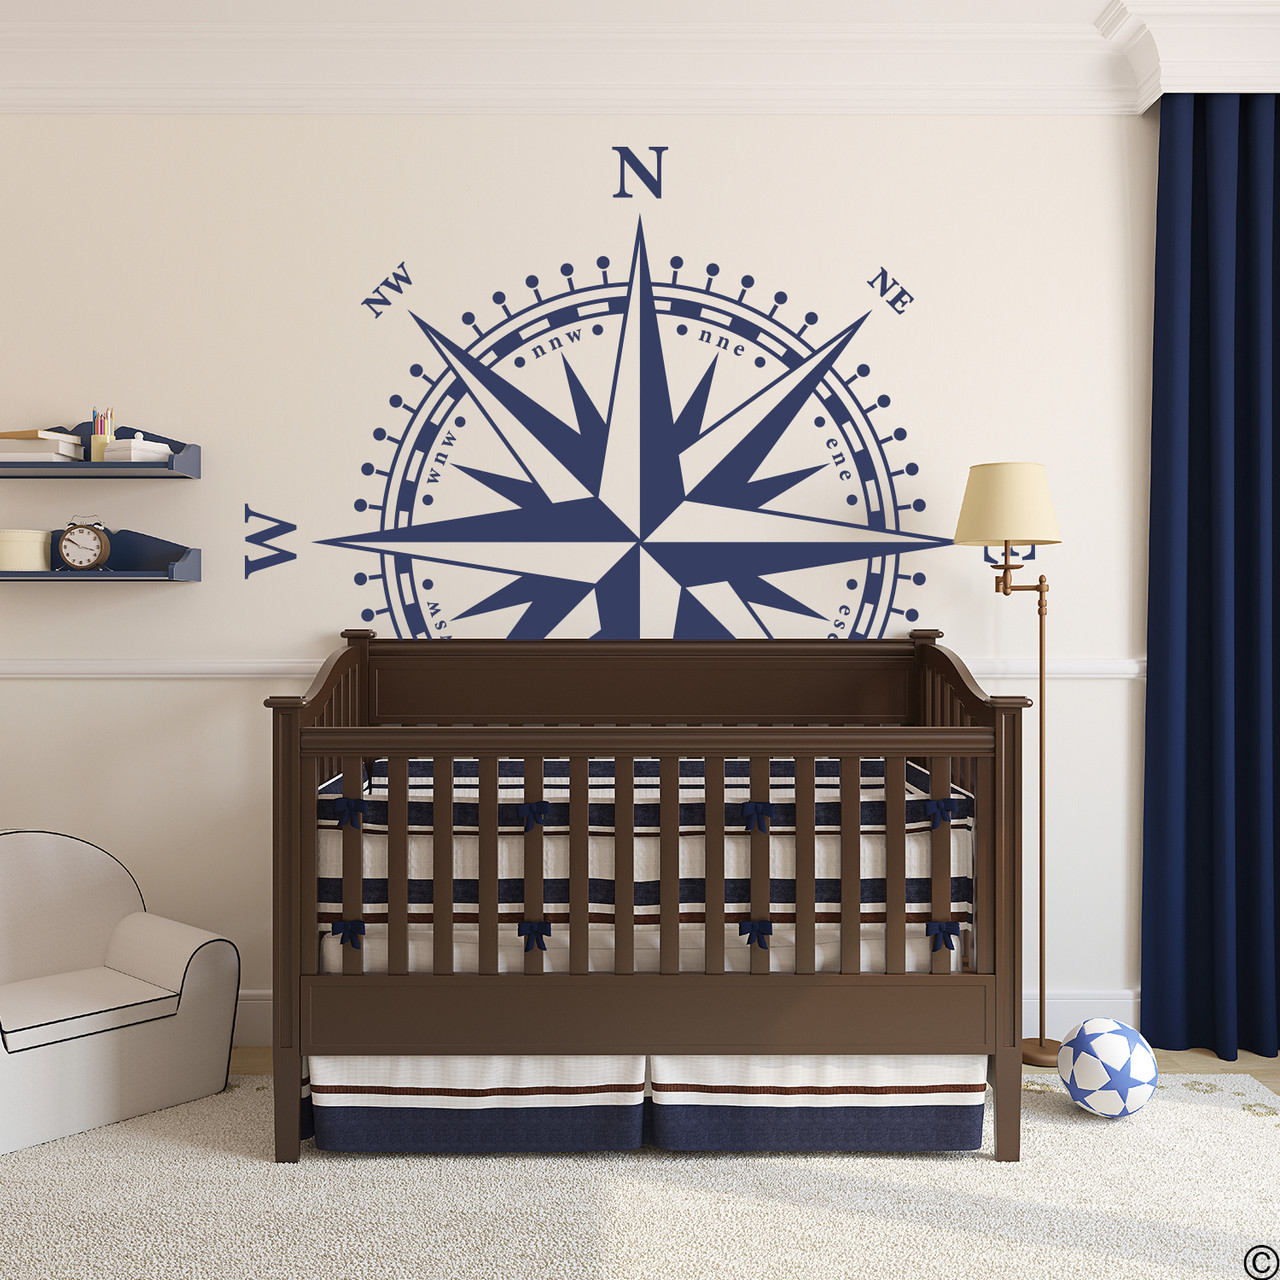 The Christopher Compass wall decal in dark blue vinyl and placed over a crib in a boys nursery room.